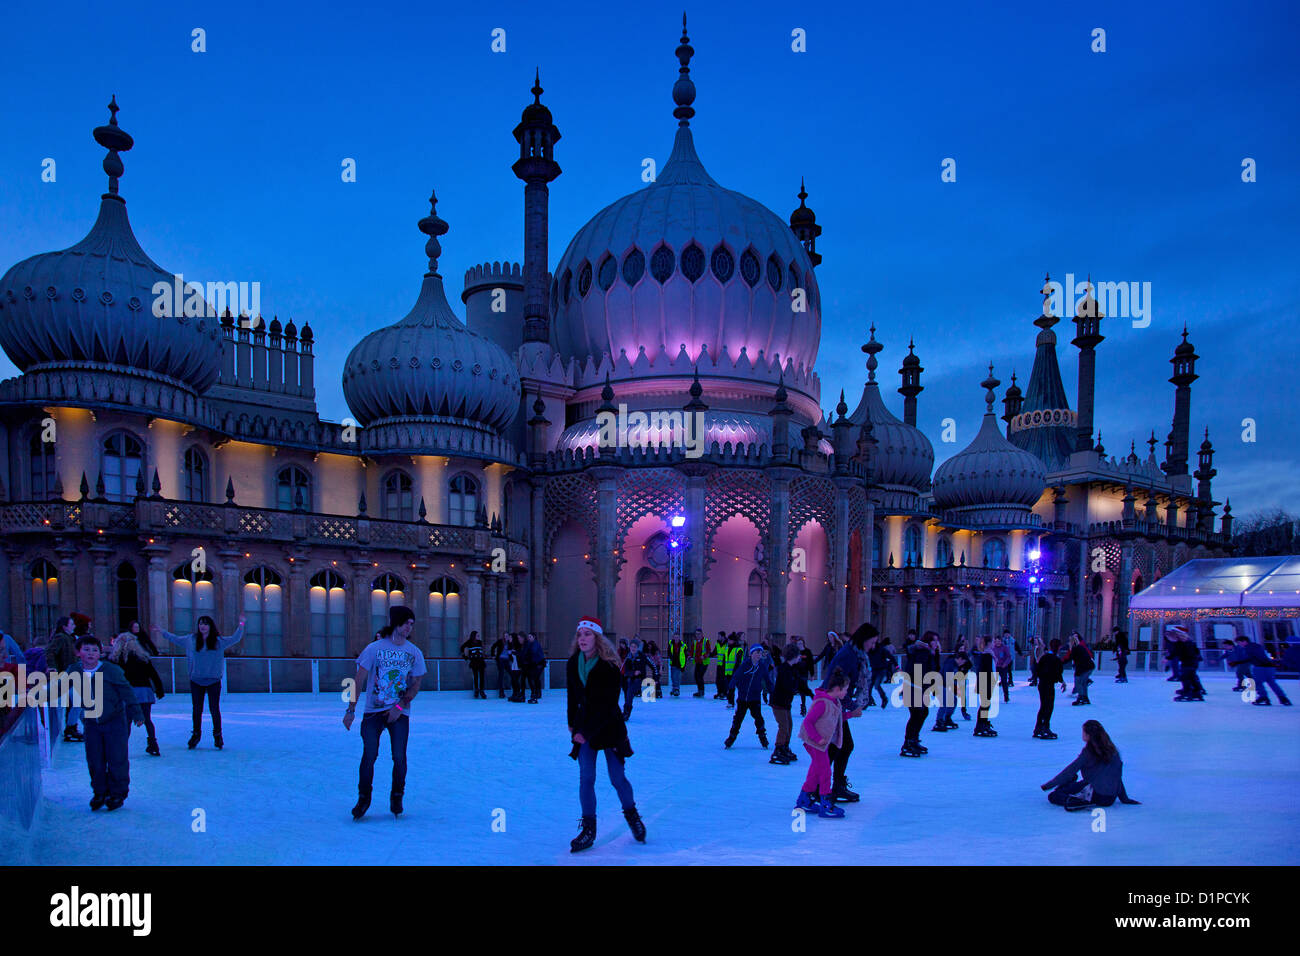 Brighton Royal Pavilion with winter ice skating rink and skaters at night, Brighton, East Sussex, England - Stock Image